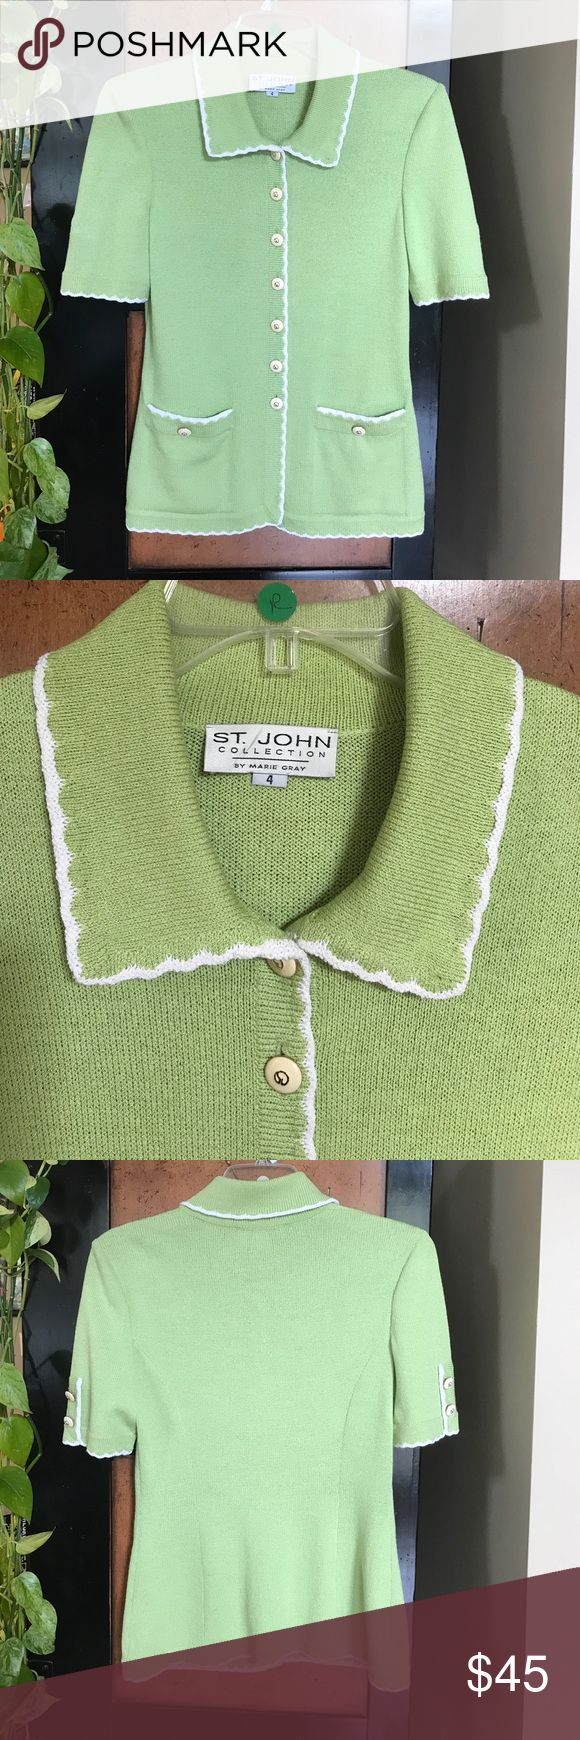 """St. John SZ 4 Lime Green short sleeve knit top Pretty St. John Collection by Marie Gray lime green with white trim Santana Knit short sleeve top in size 4.  Cream and gold logo buttons.  18"""" across underarms, 15.5"""" across waist, 26"""" long.  One small hole in right pocket, otherwise in very good used condition. St. John Tops"""